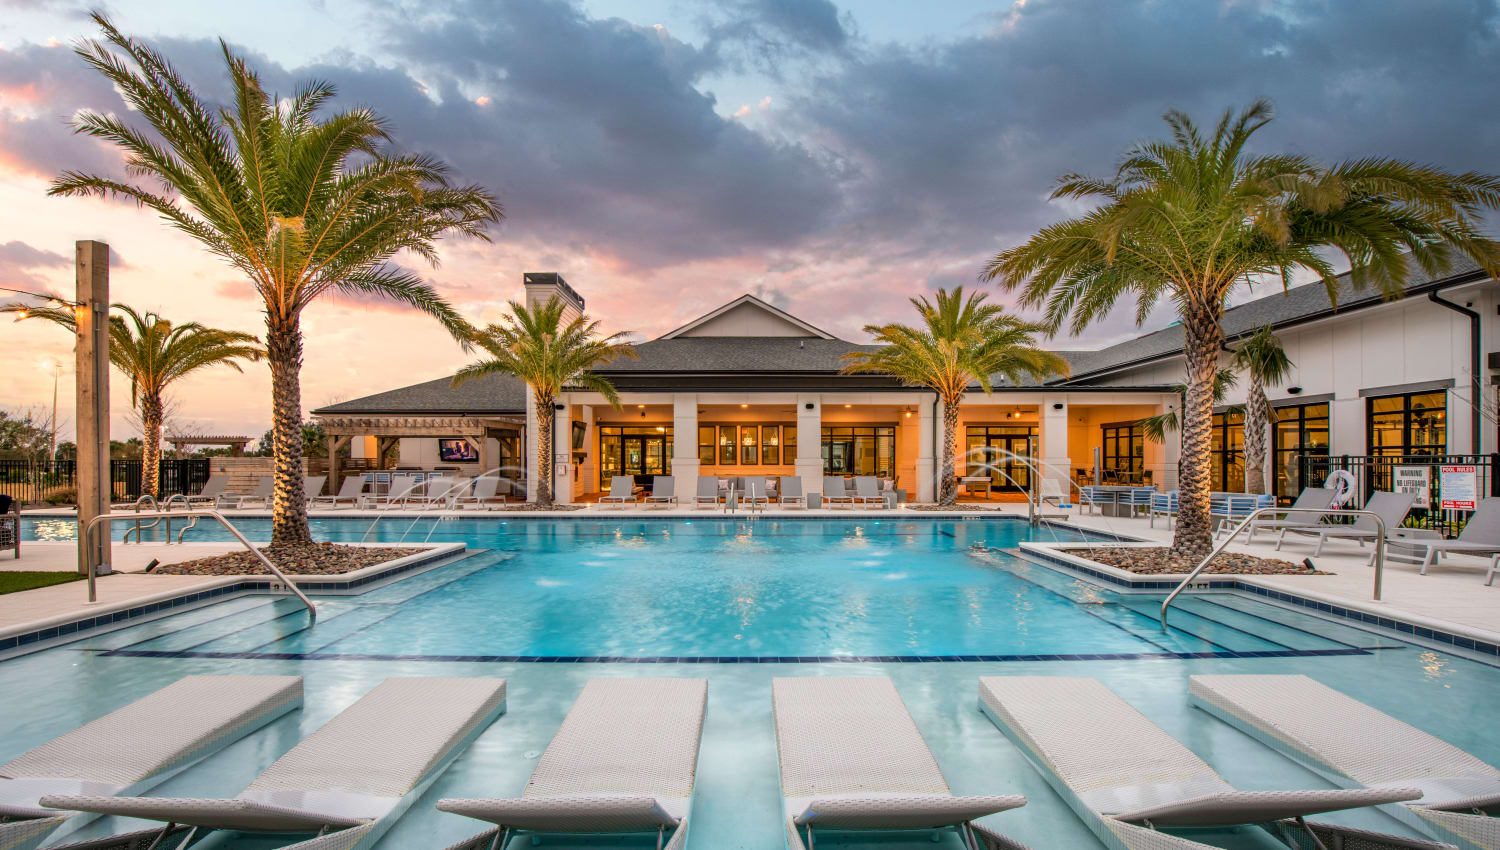 A resort-style swimming pool with plenty of lounge chairs at Olympus Emerald Coast in Destin, Florida